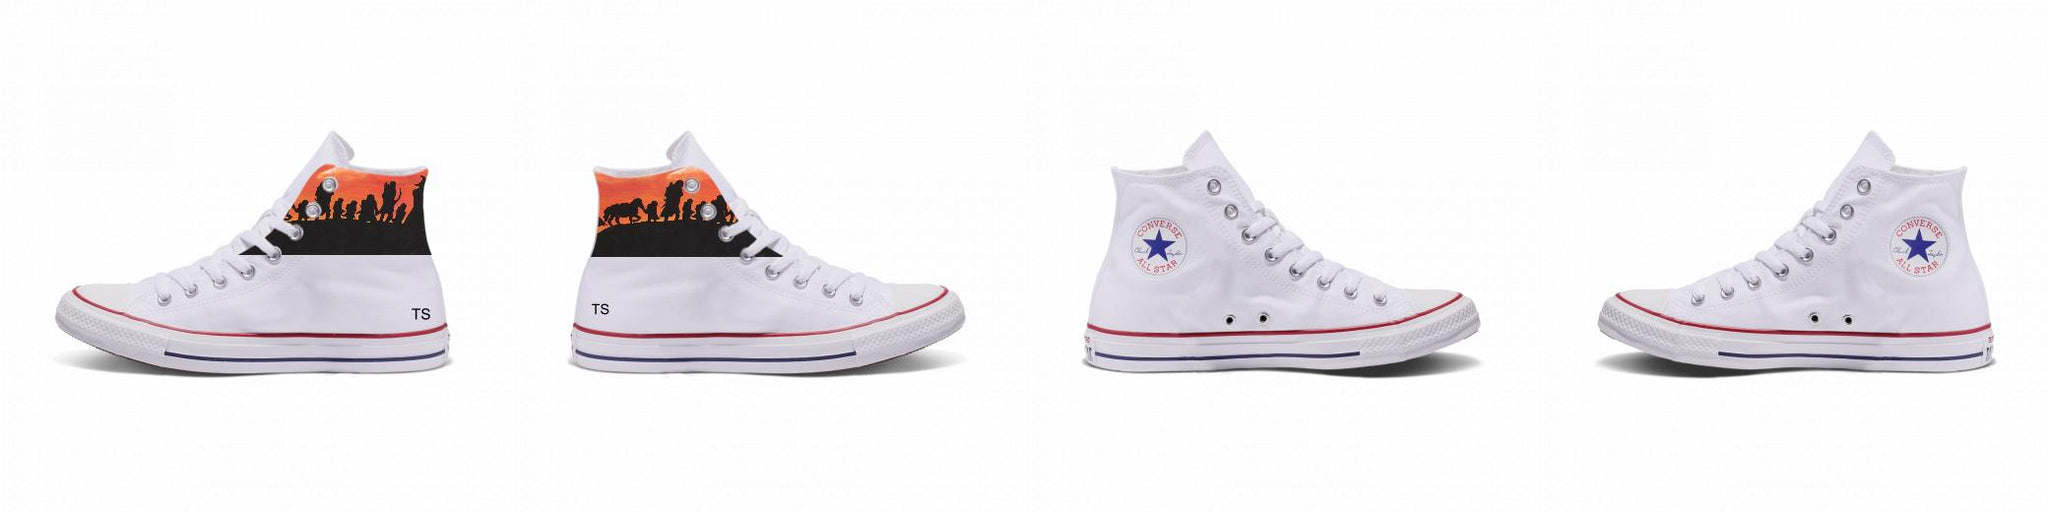 Custom Chuck Taylor Converse High Top